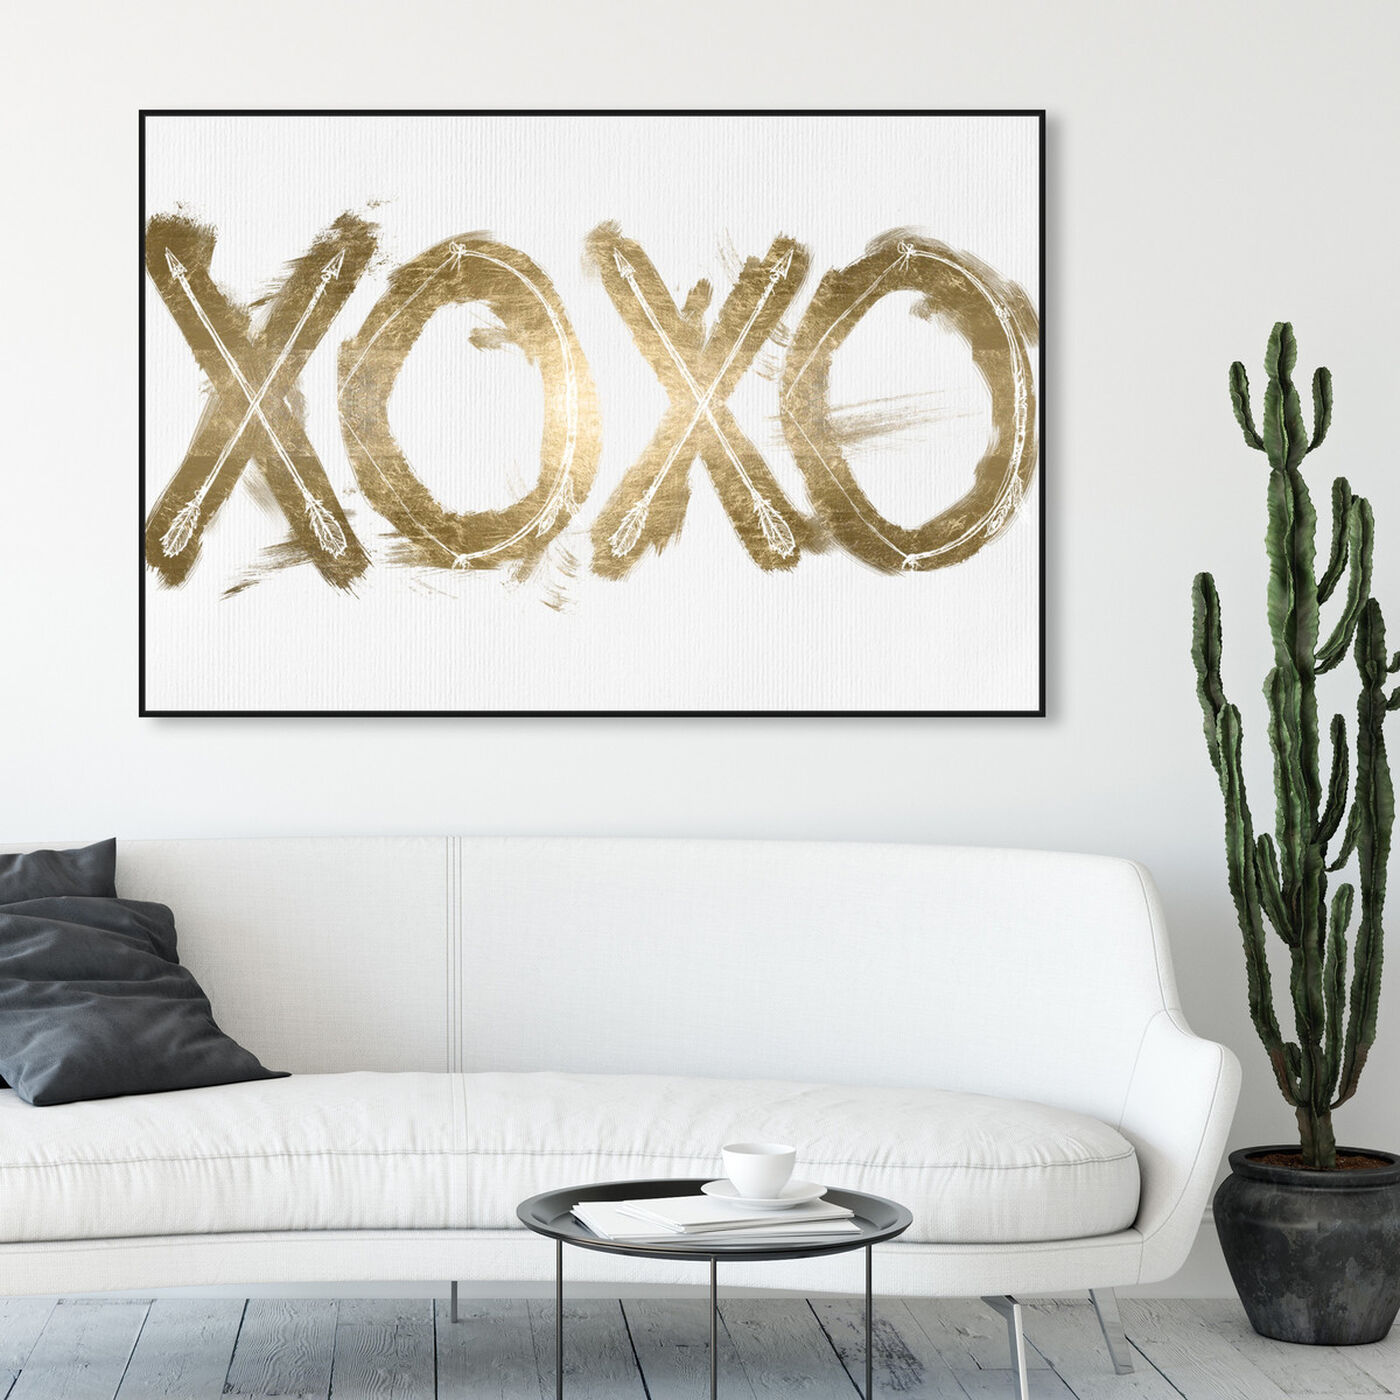 Hanging view of Warrior XOXO featuring typography and quotes and quotes and sayings art.